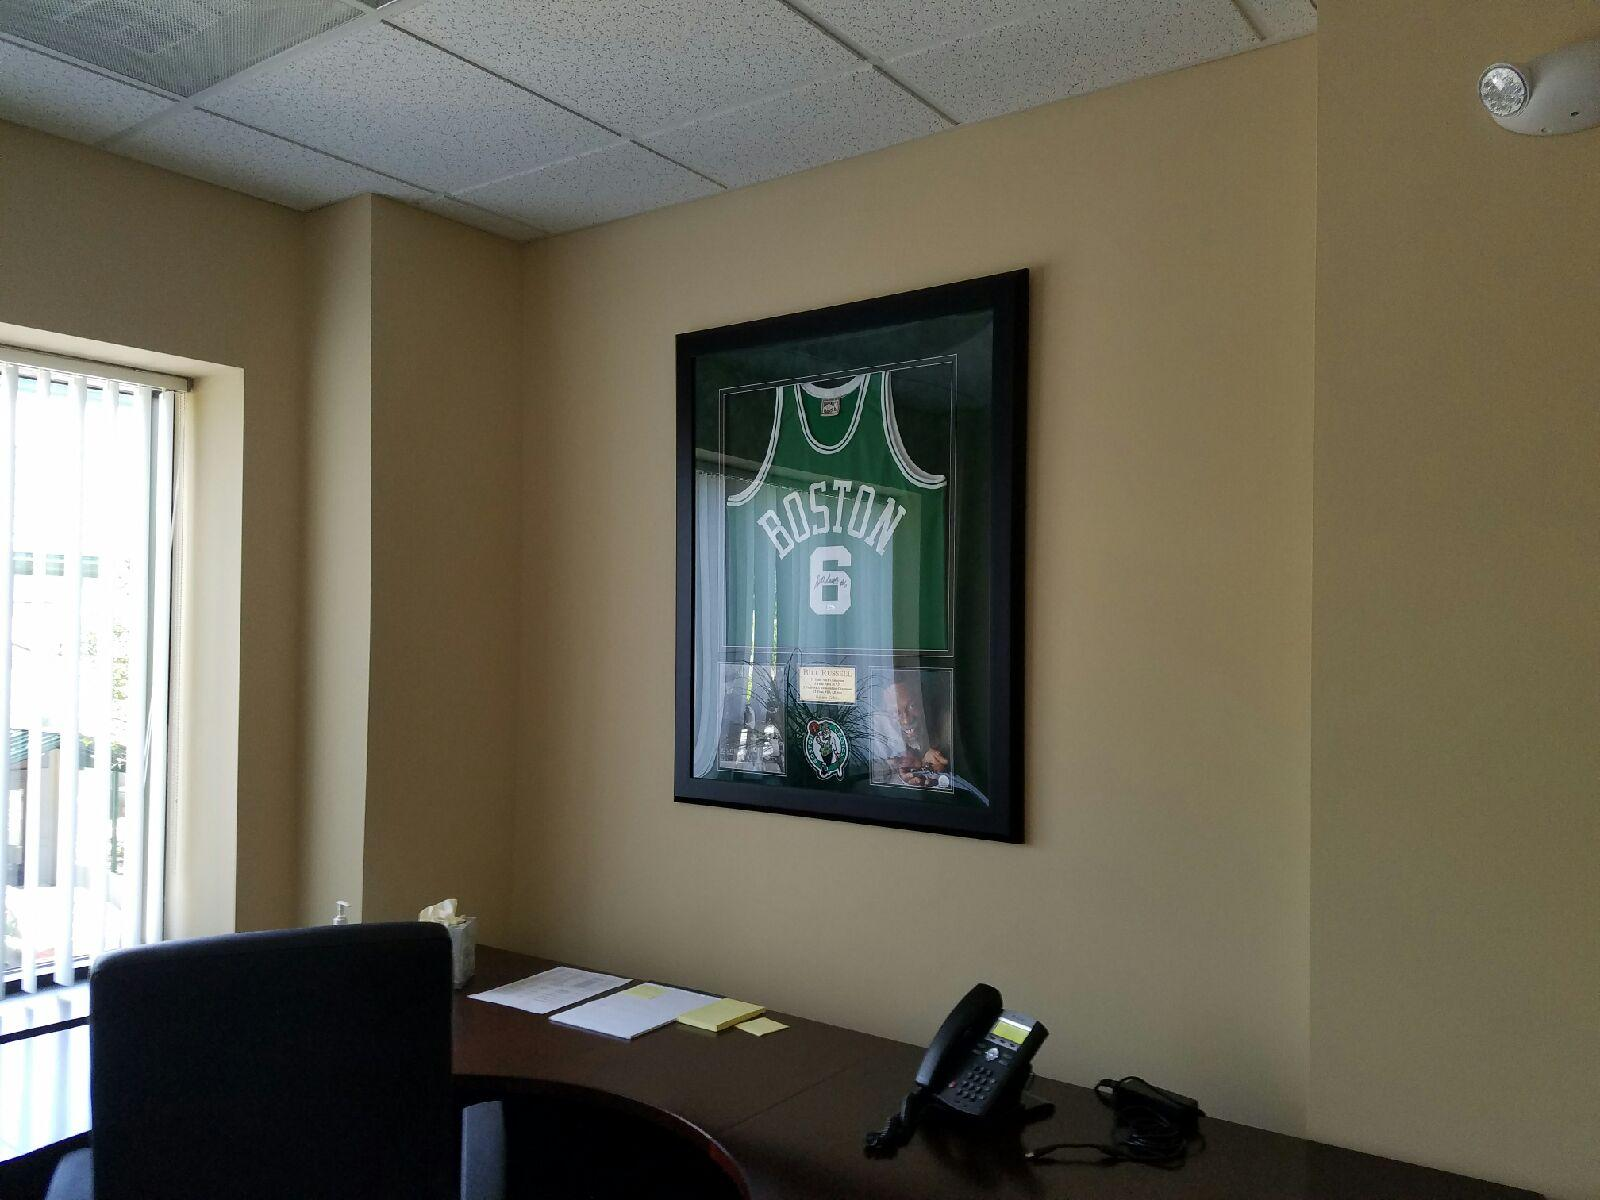 Home; Office Decor Sports Memorabilia 004